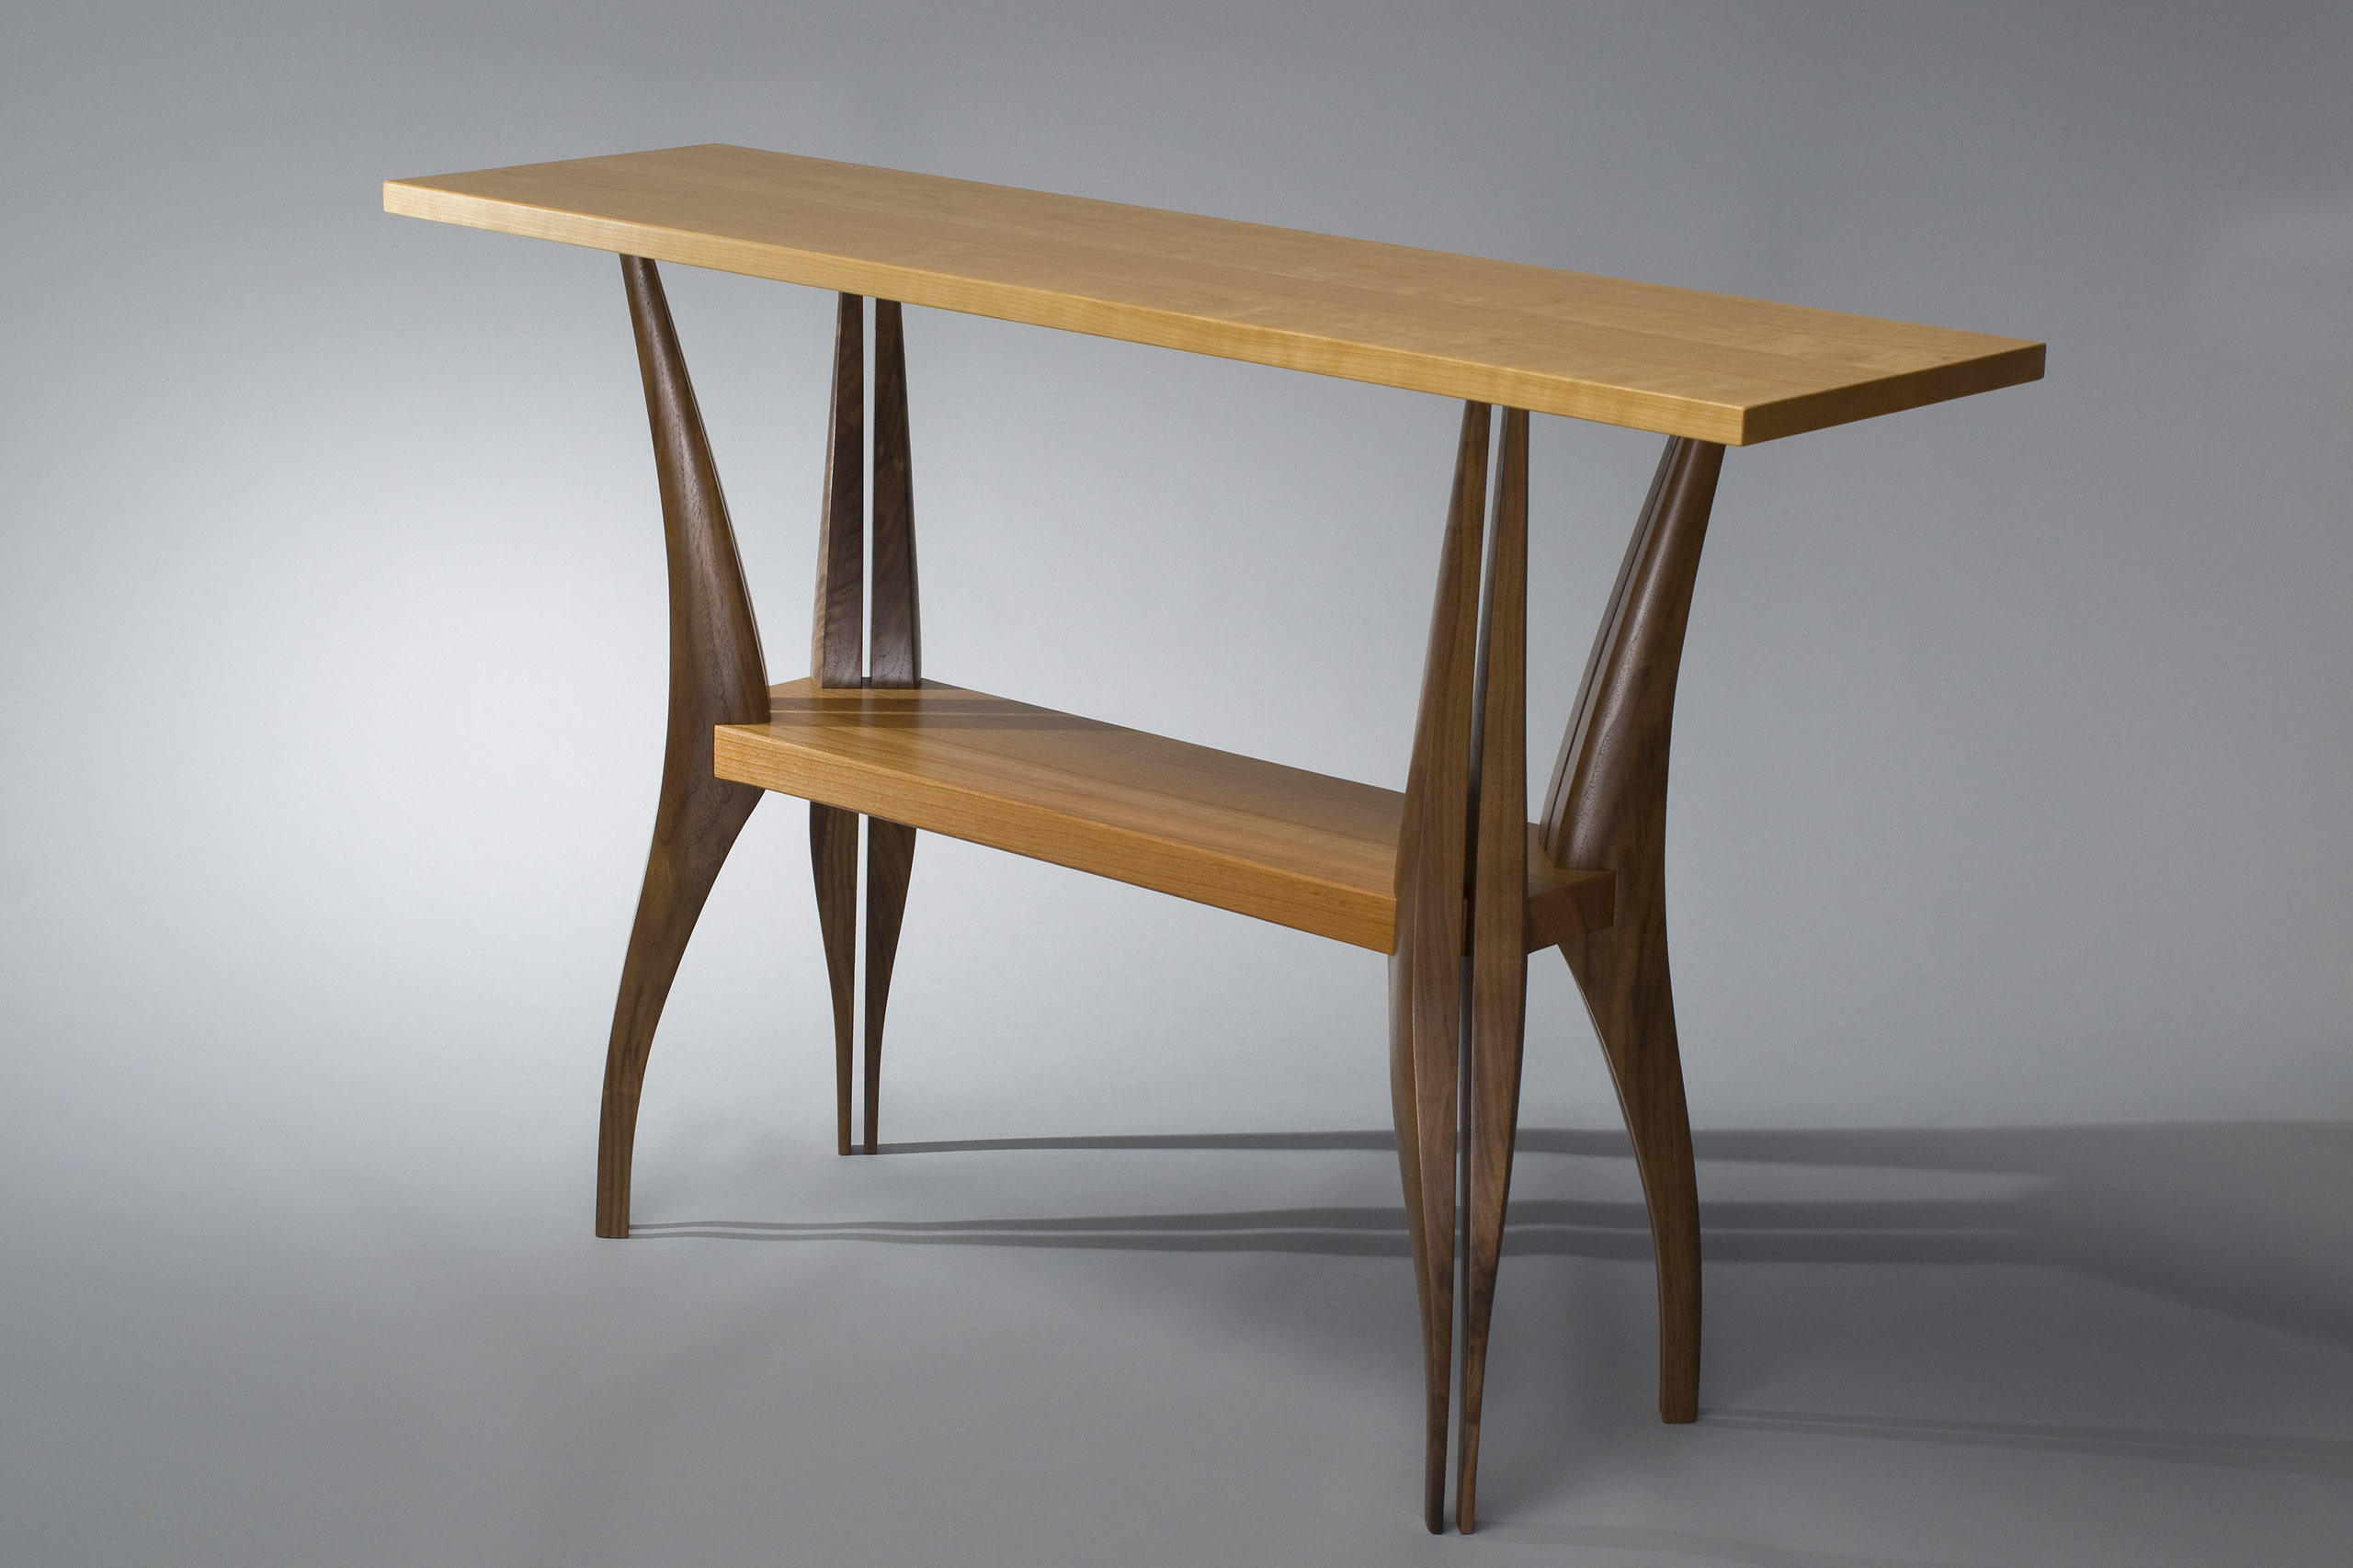 Gazelle Hall Table Solid Walnut And Cherry Wood